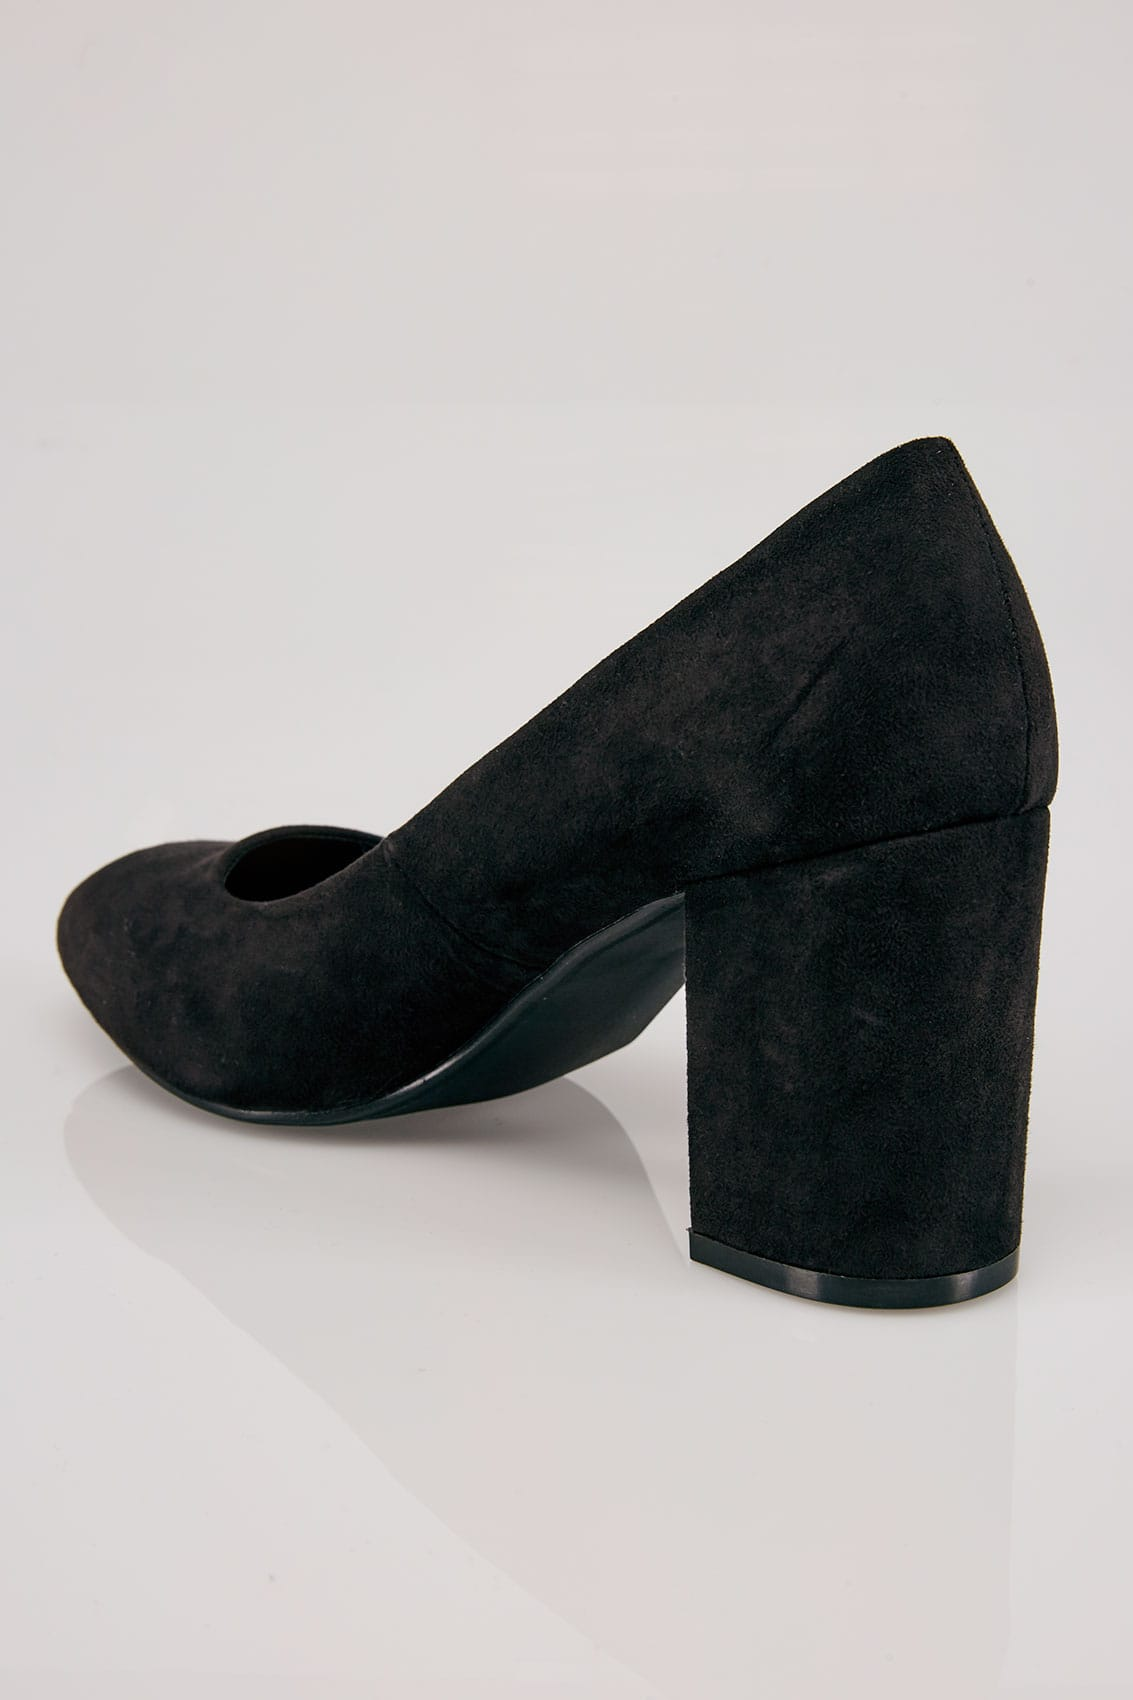 Black Faux Suede Court Shoes In E Fit-7901